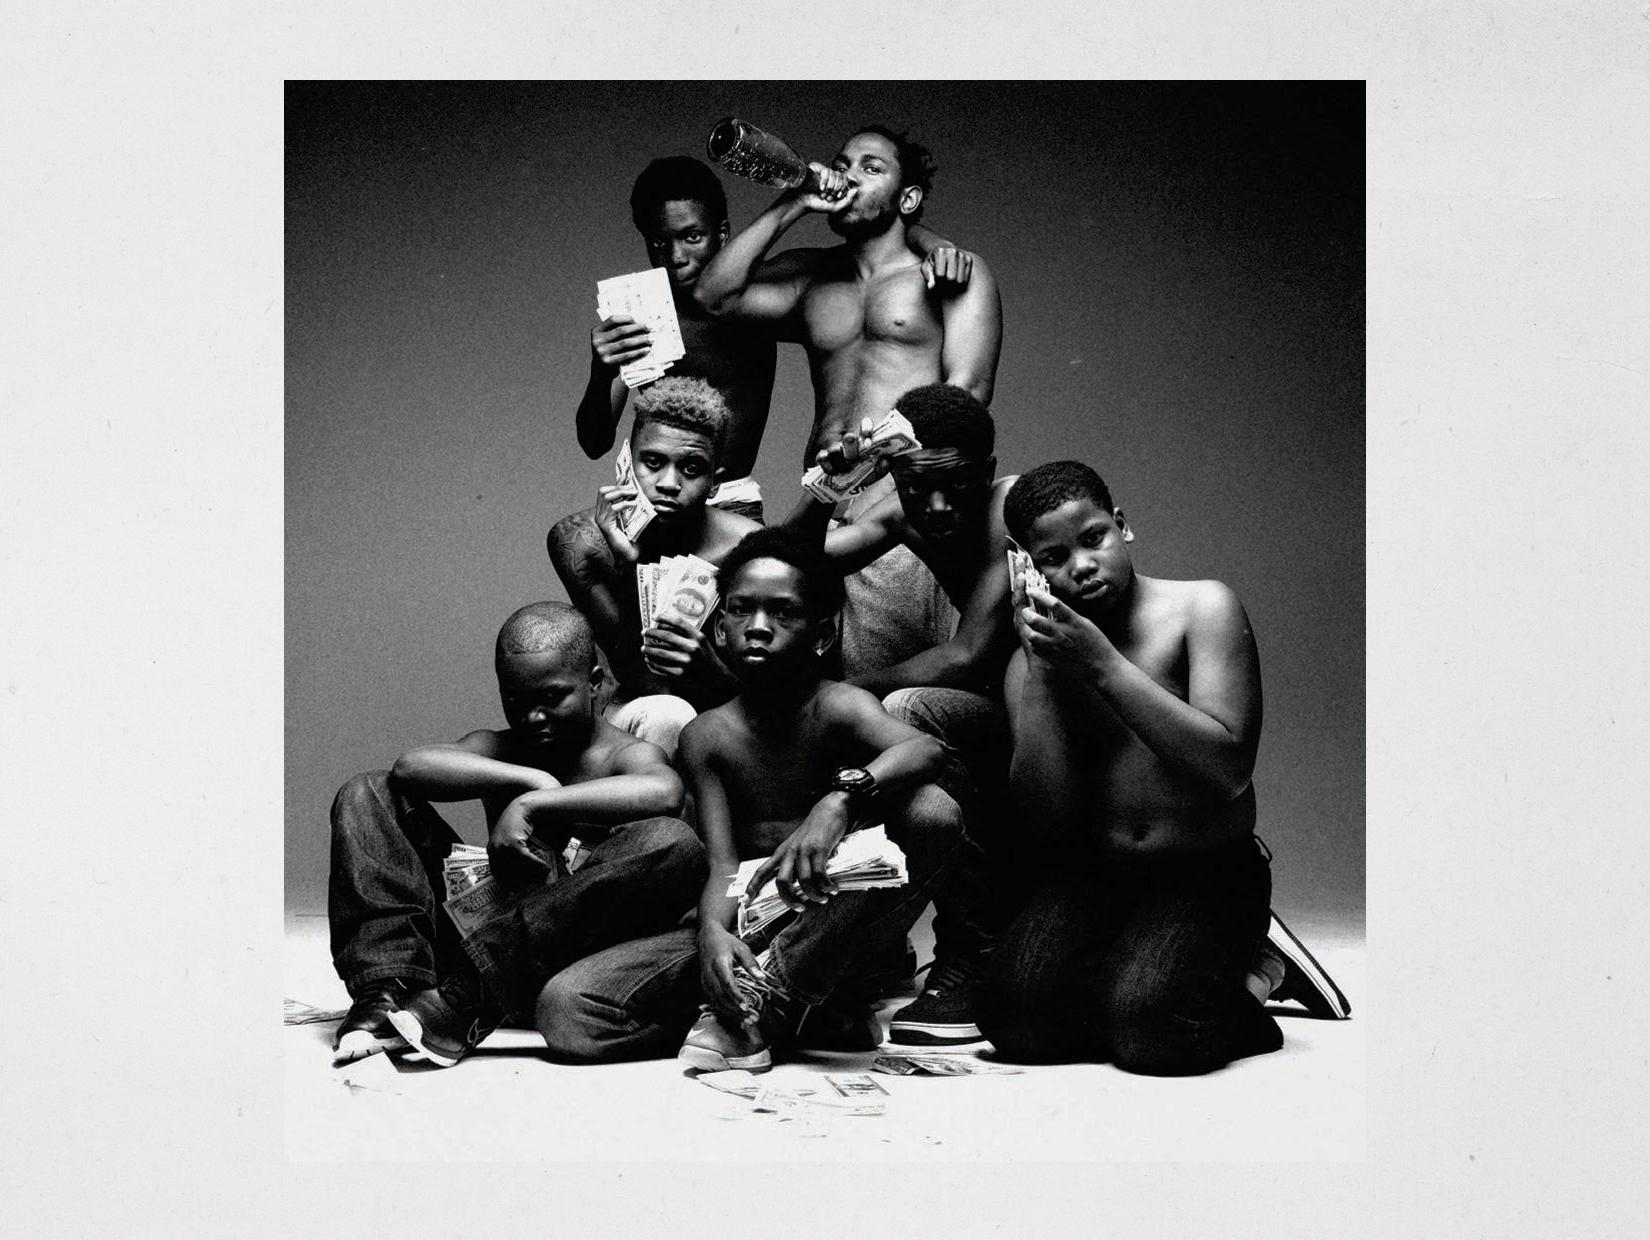 3. Kendrick Lamar - To Pimp A Butterfly